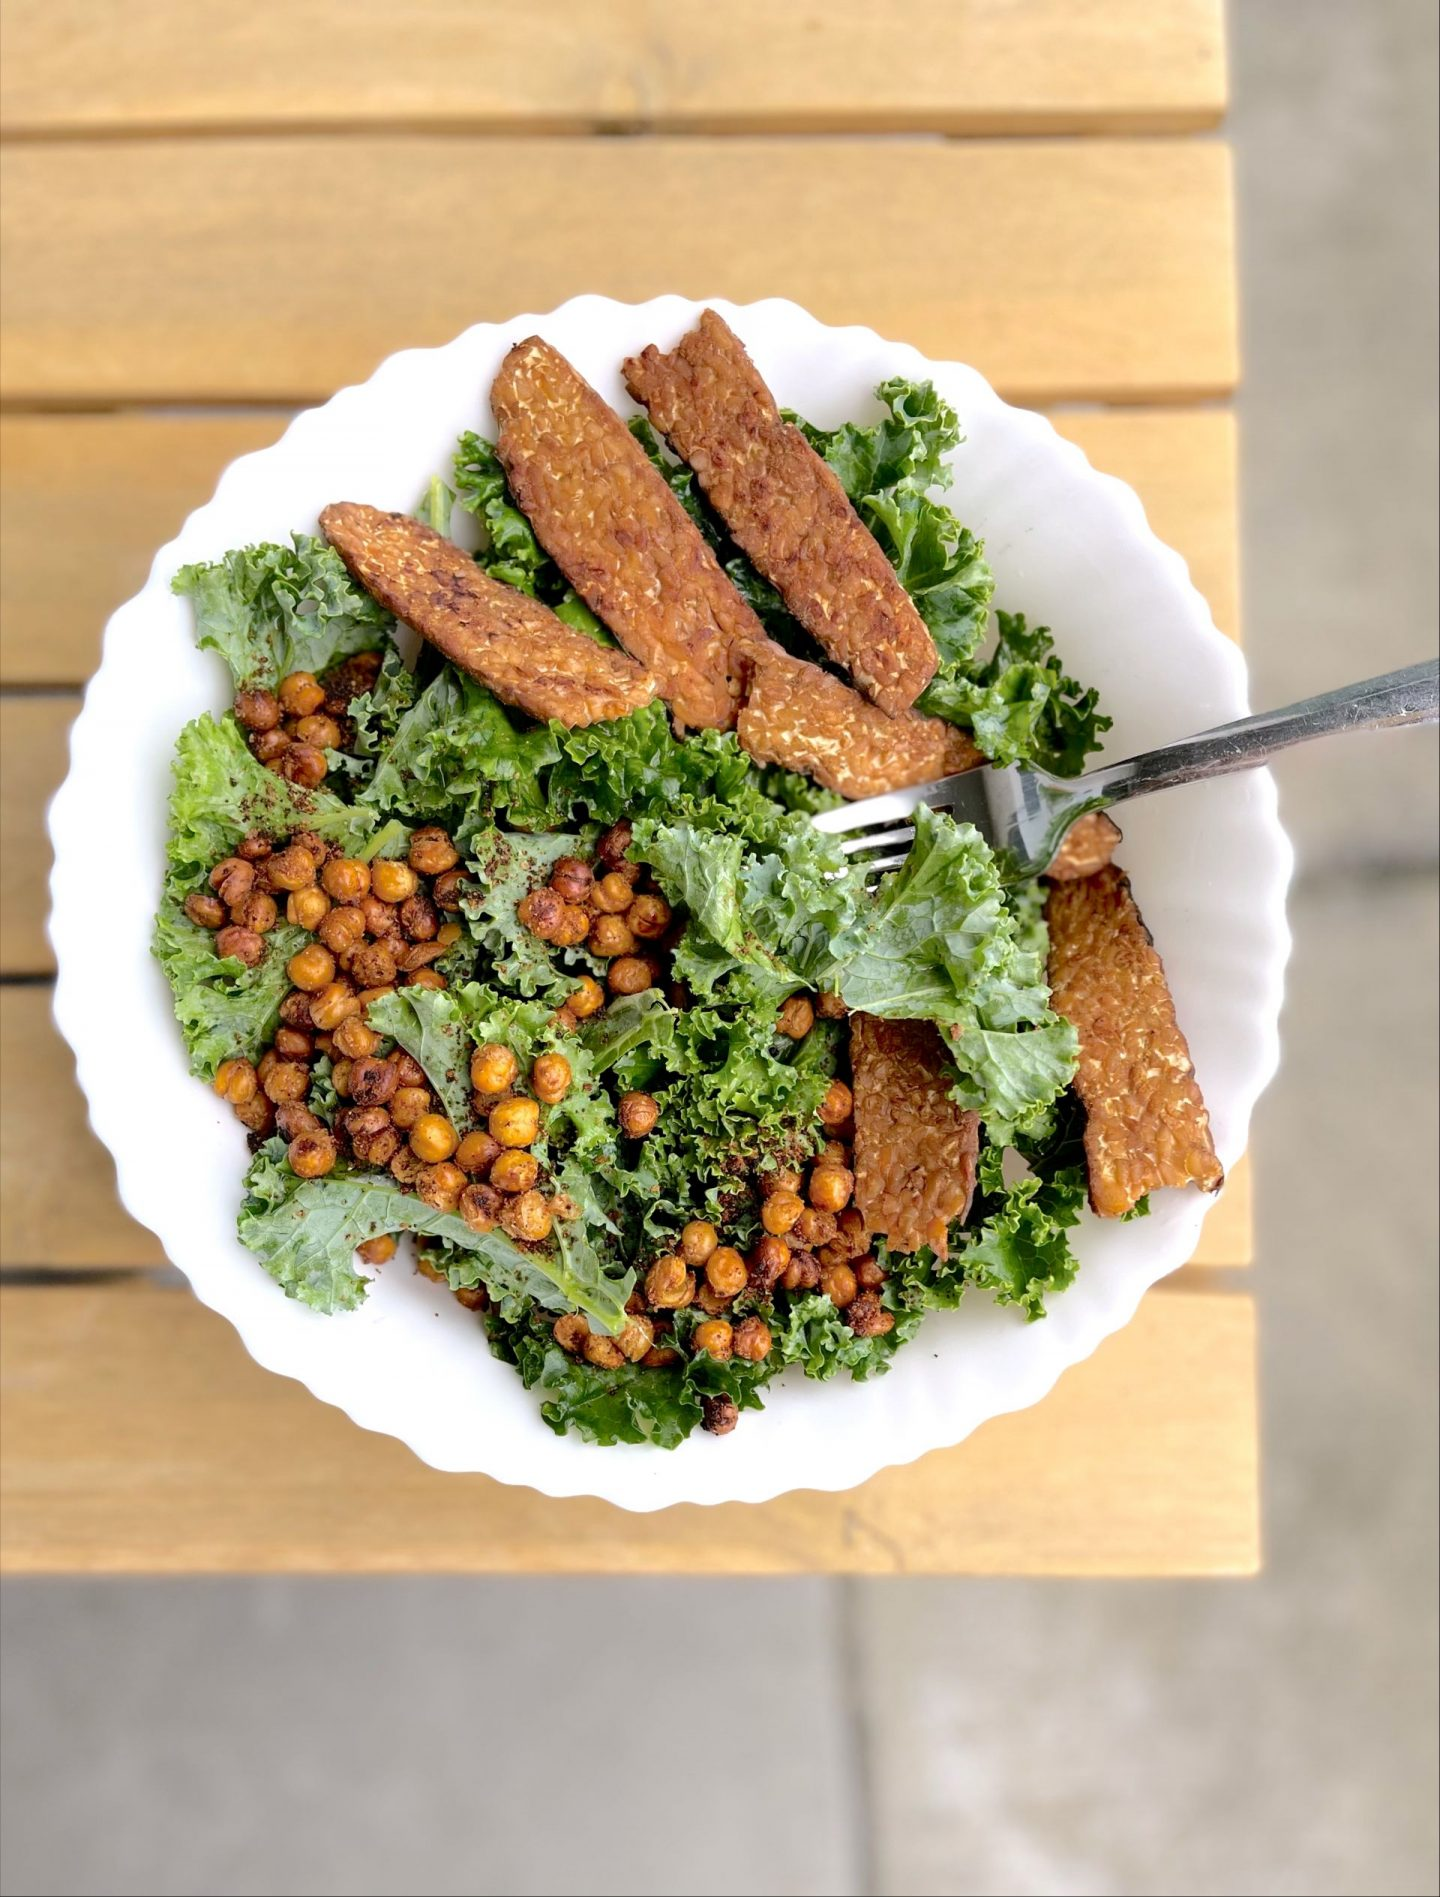 kale tempeh and roasted chickpea salad in a white bowl on a wooden table